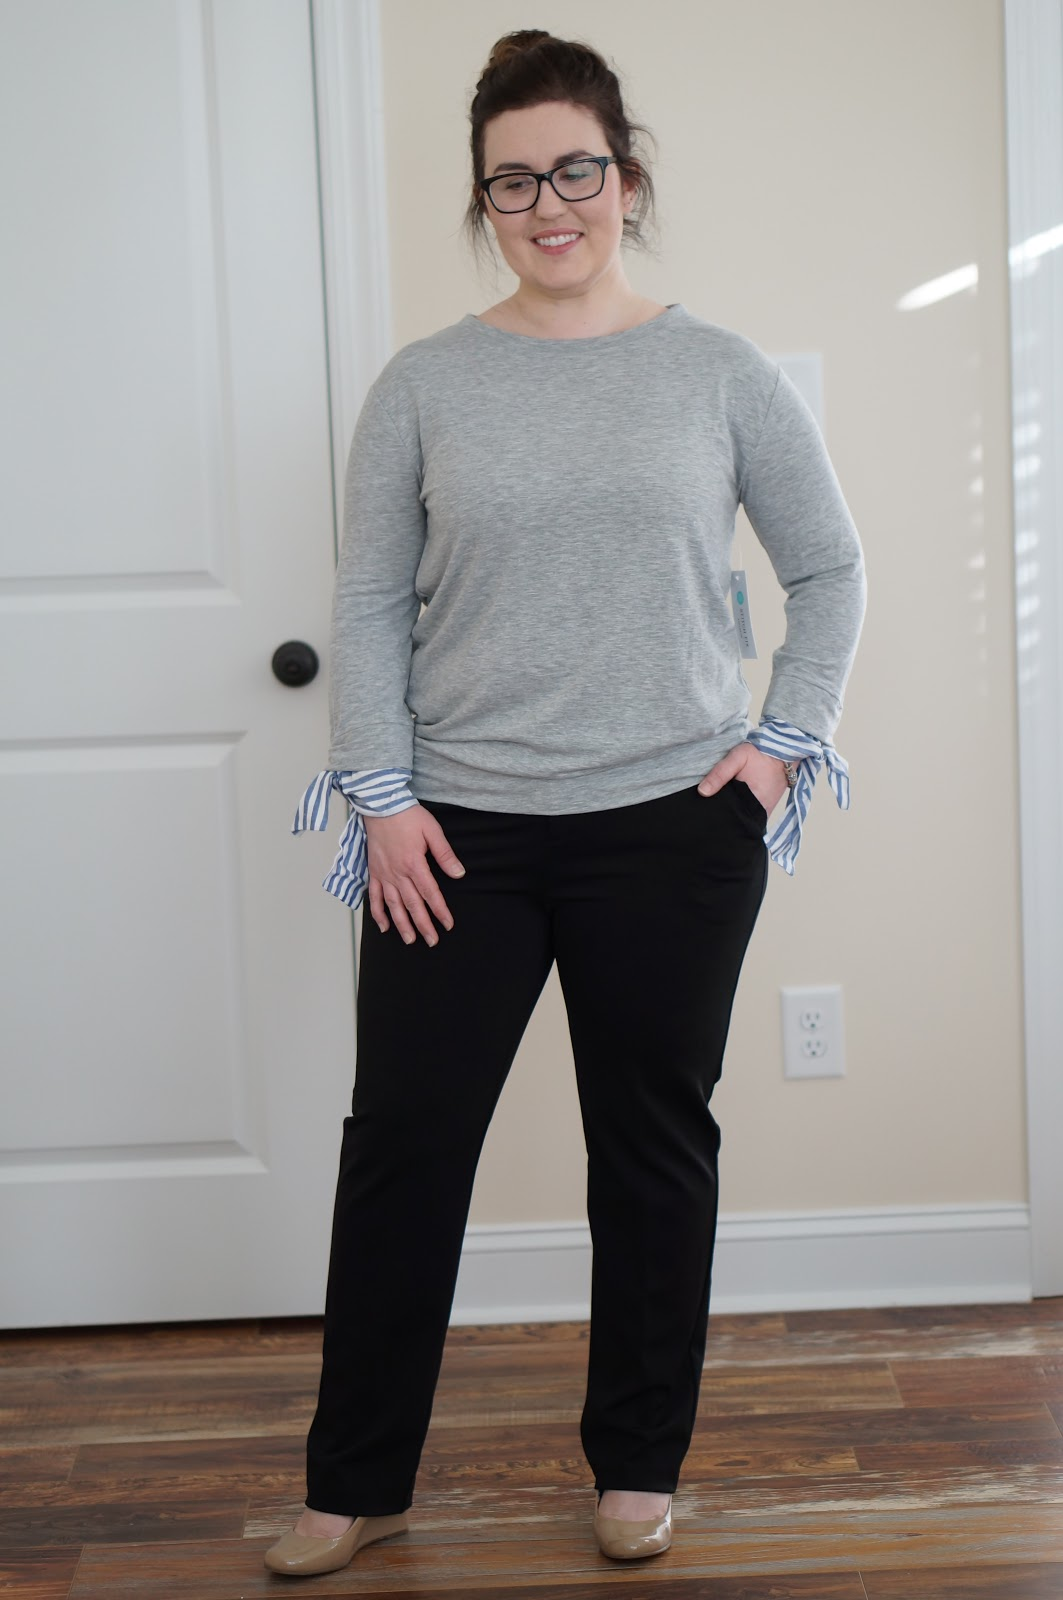 Rebecca Lately Stitch Fix Potter's Pot Paris Straight Ruffle Pants